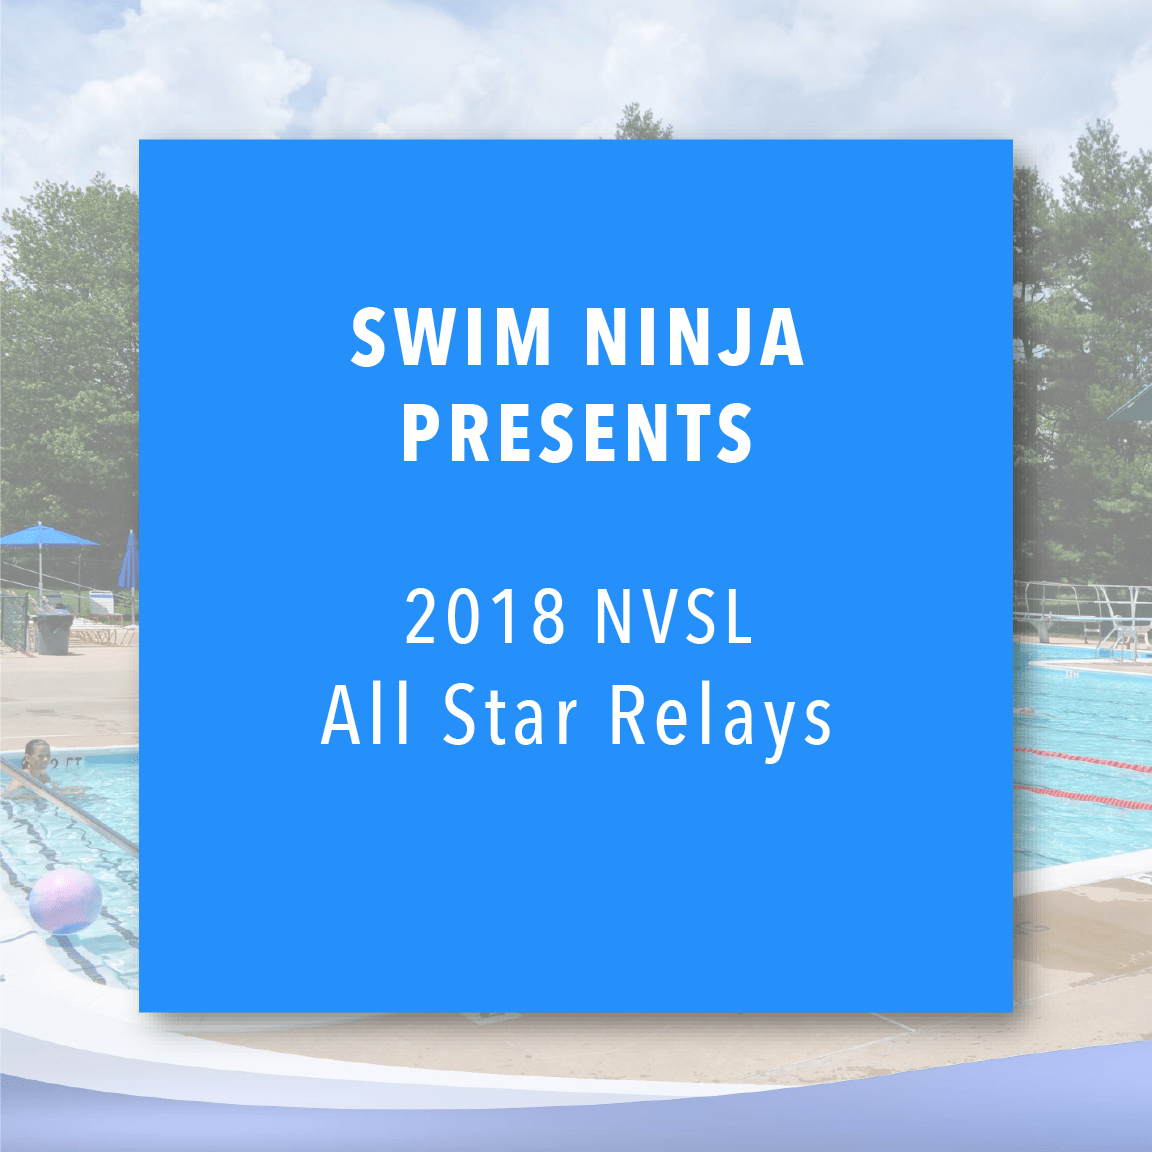 2018 NVSL All Star Relays